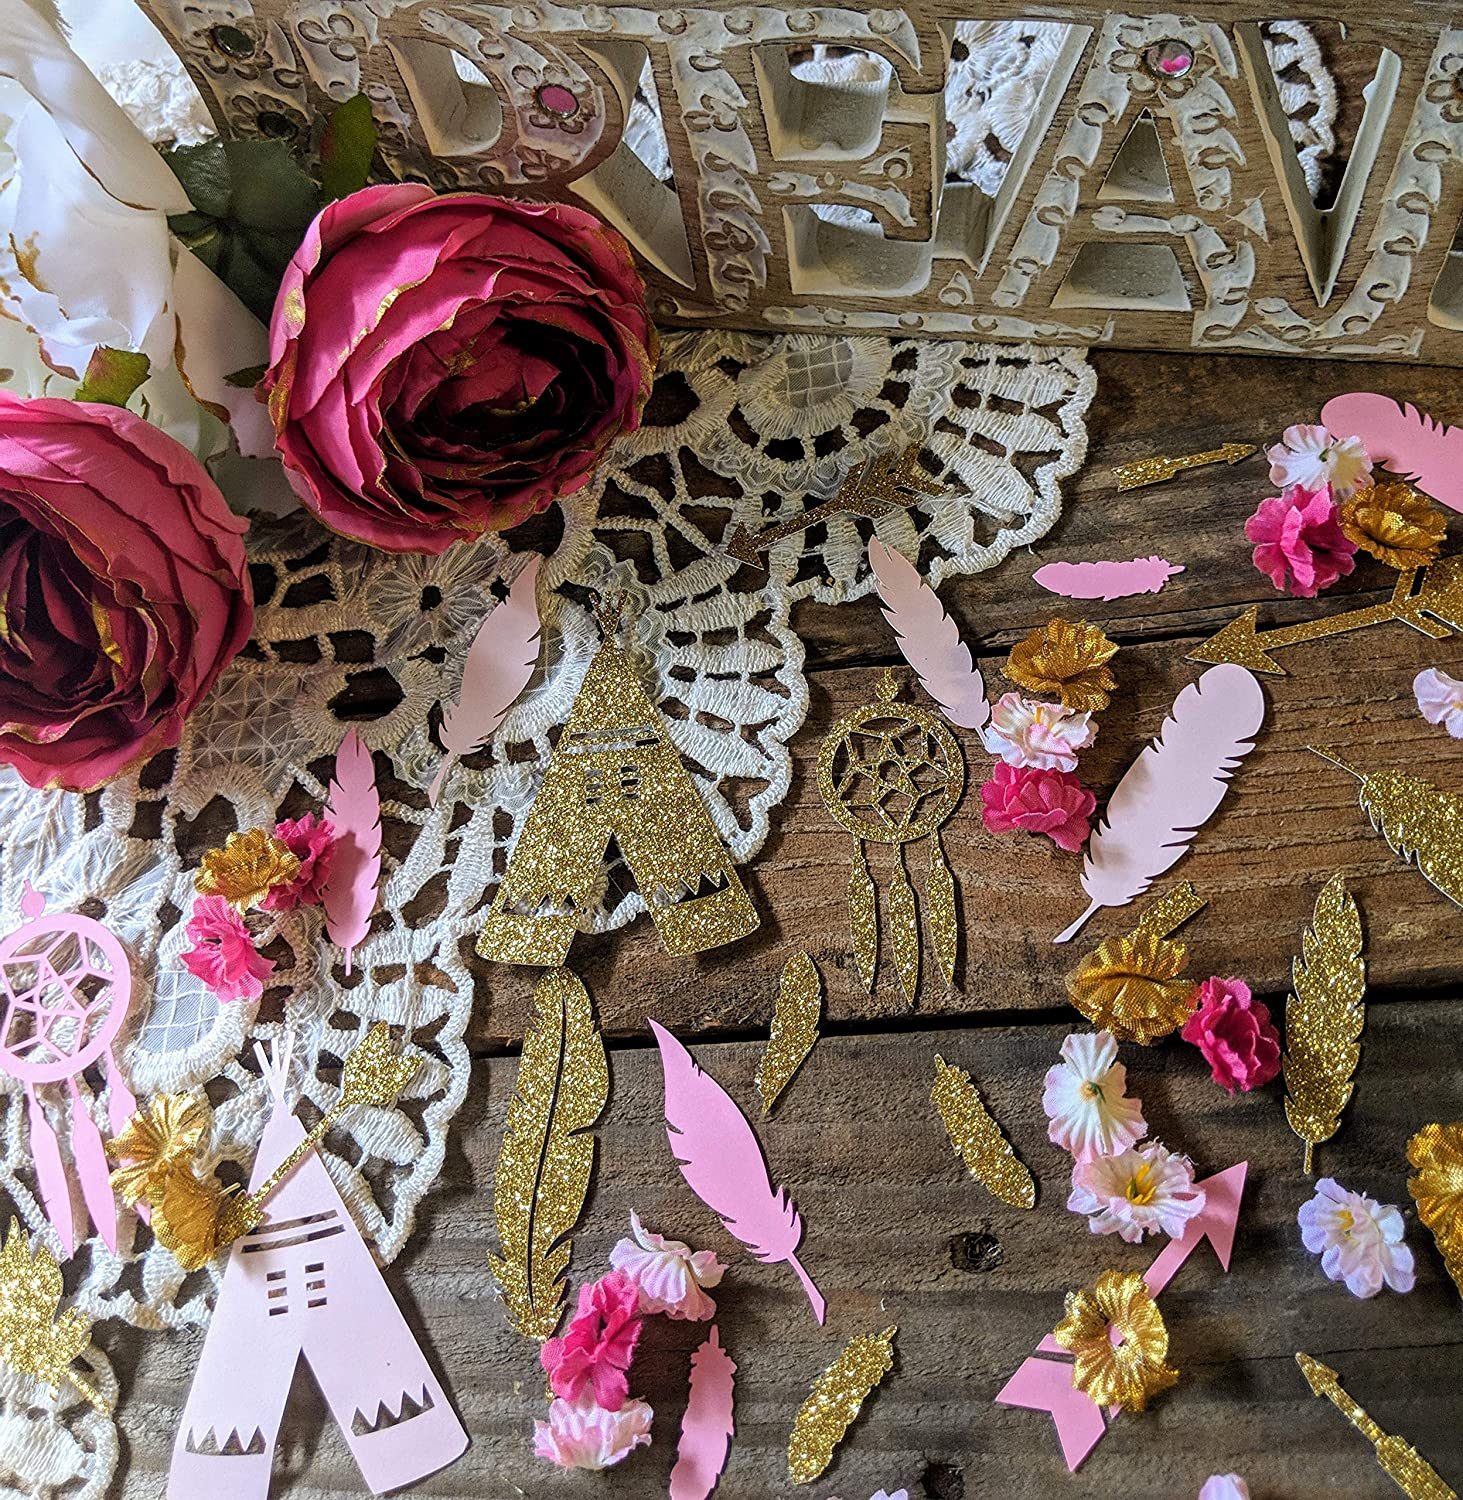 Boho Party Decorations, Boho Baby Shower Decorations for Girl, Dream Catcher Baby Shower, Tribal Baby Shower, Pink And Gold Party Decor